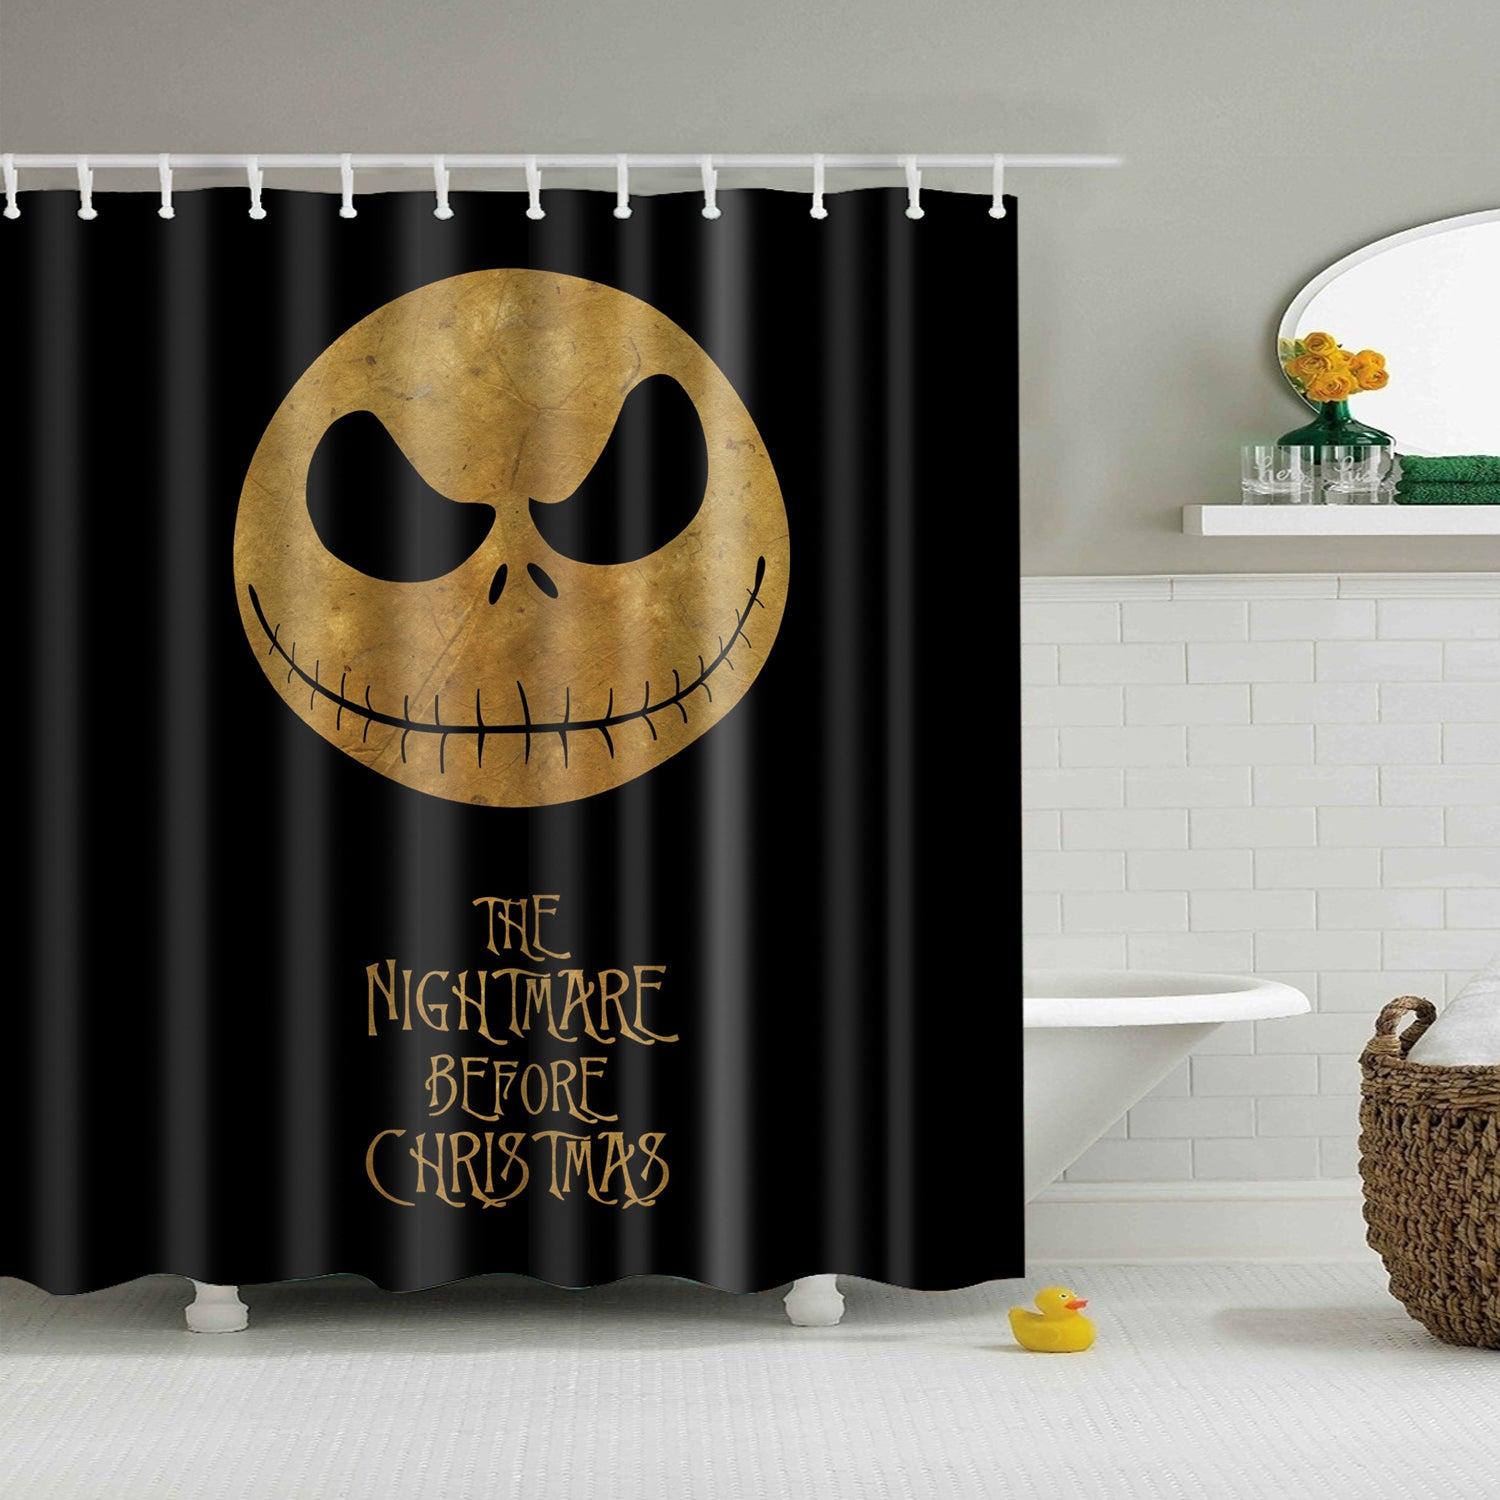 The Nightmare Before Christmas Shower Curtain | GoJeek